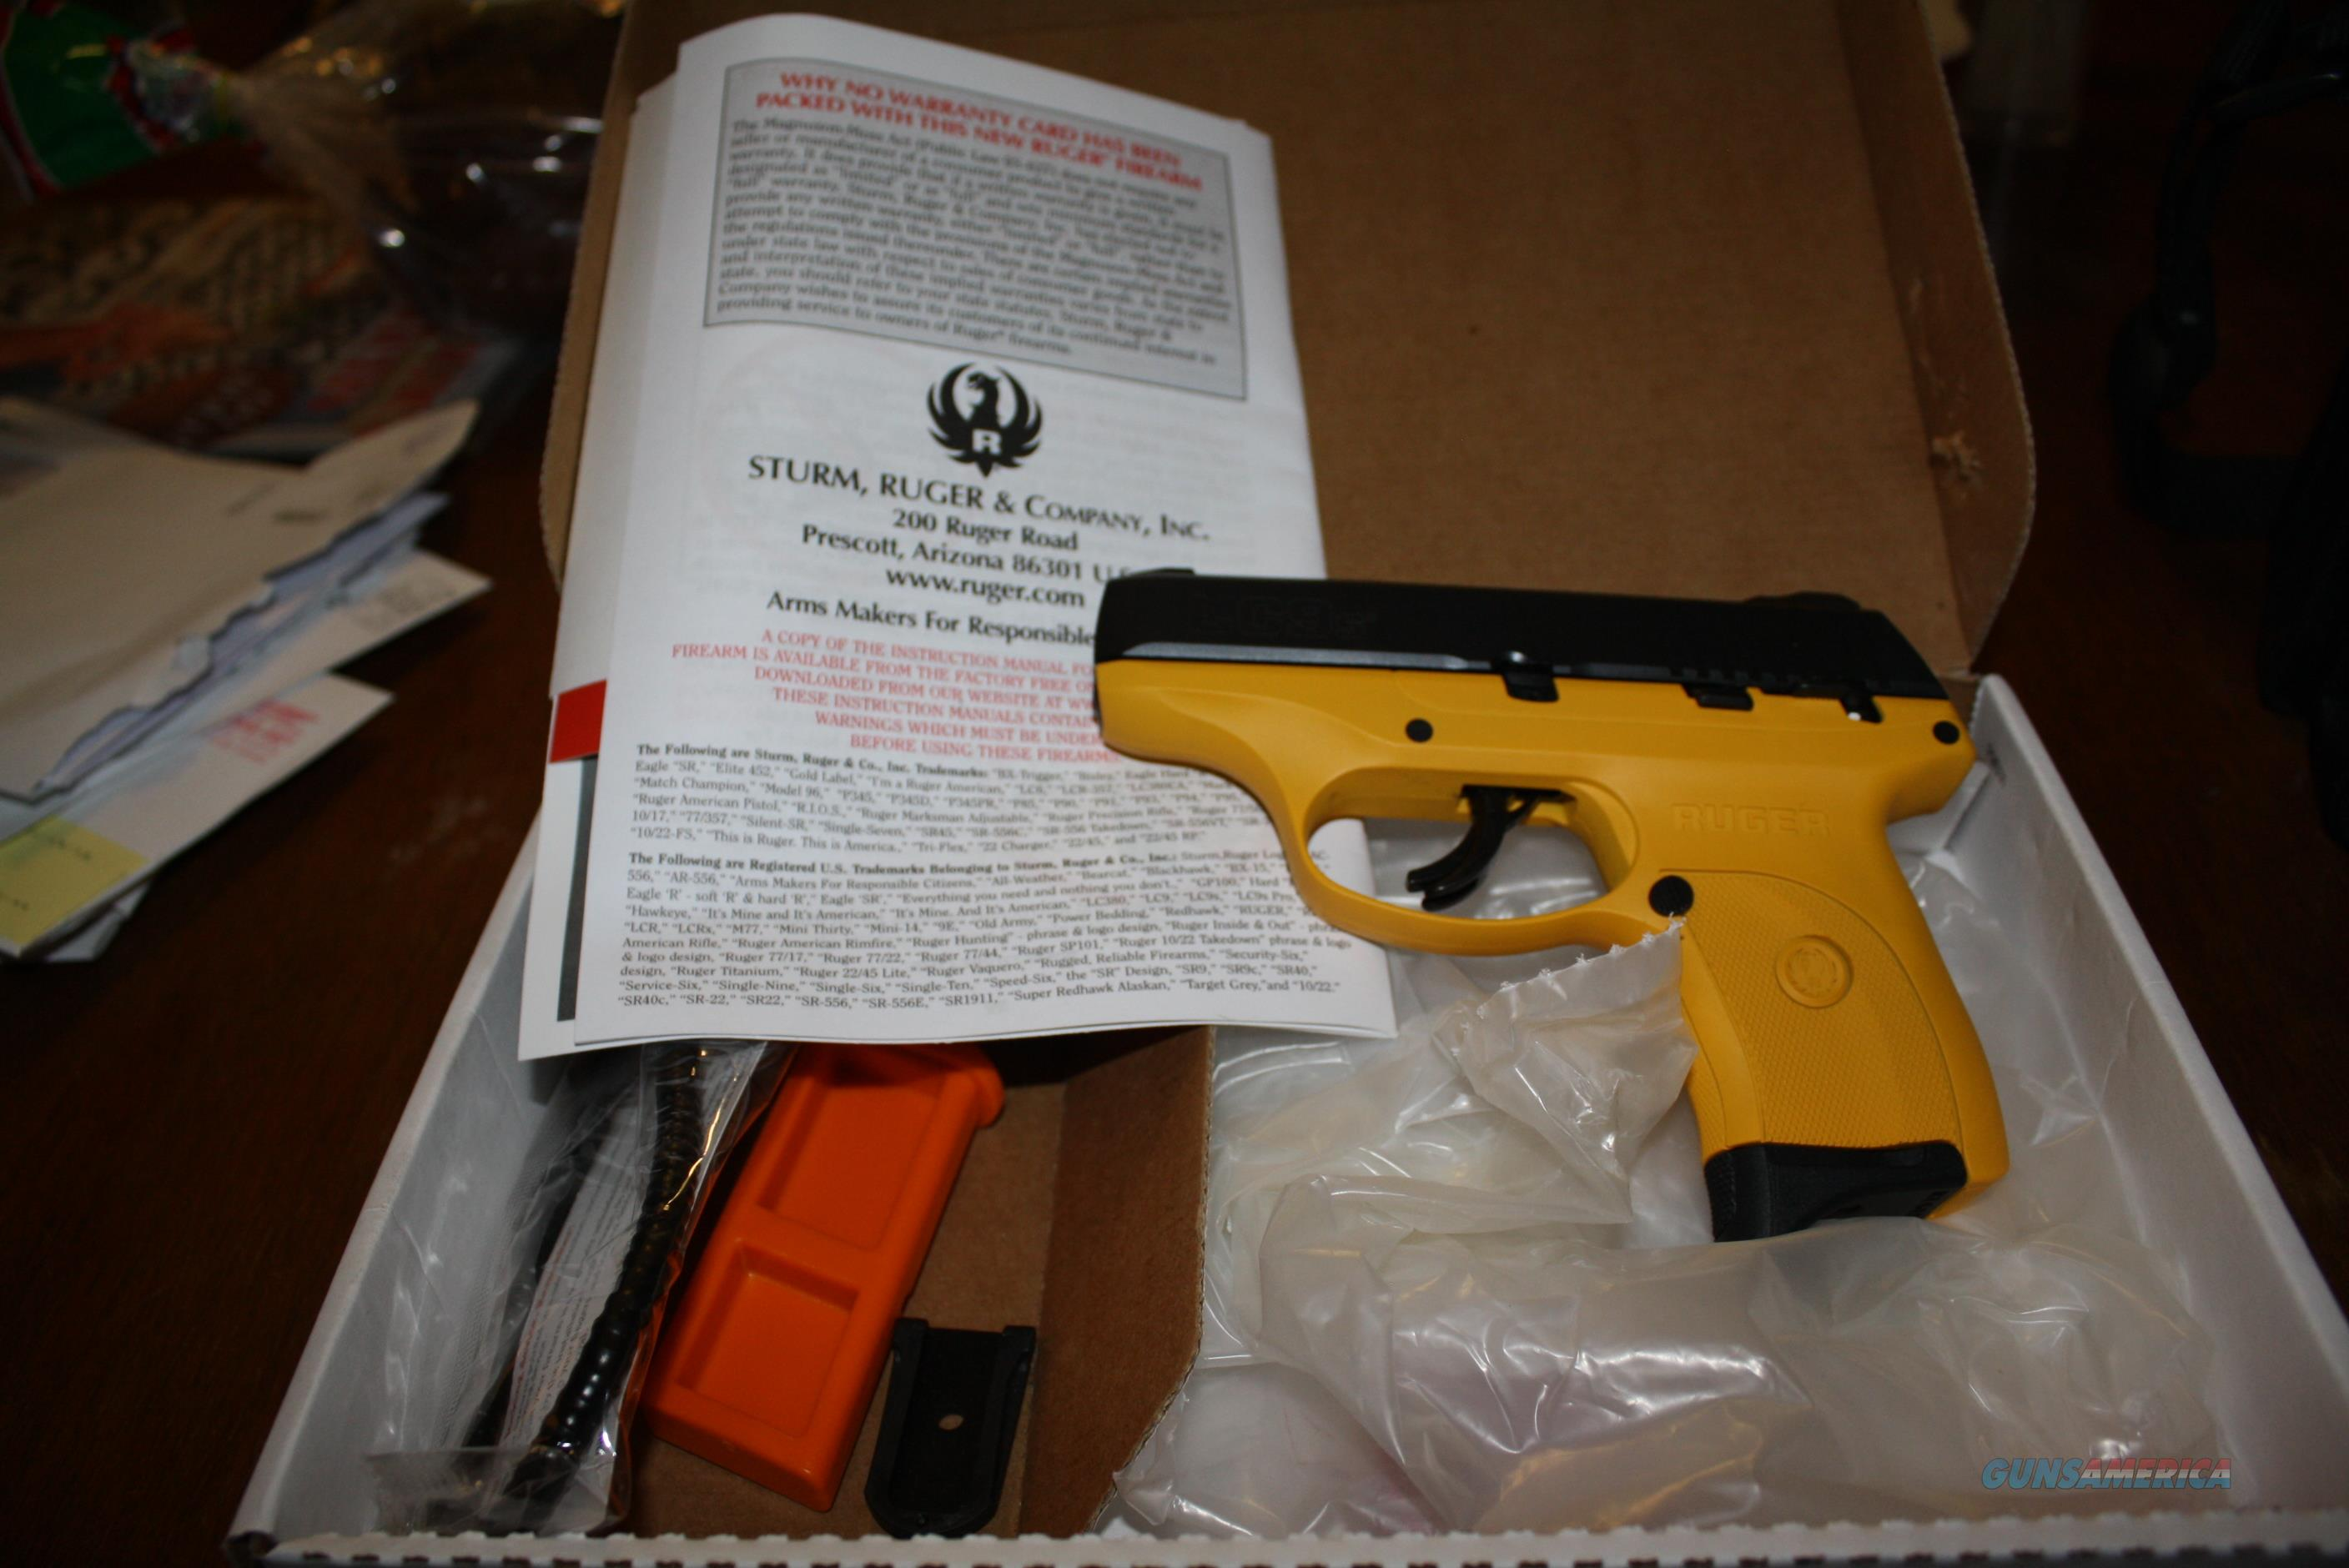 NEW RUGER LC9s WITH YELLOW CERAKOTE FRAME 9MM  Guns > Pistols > Ruger Semi-Auto Pistols > LC9